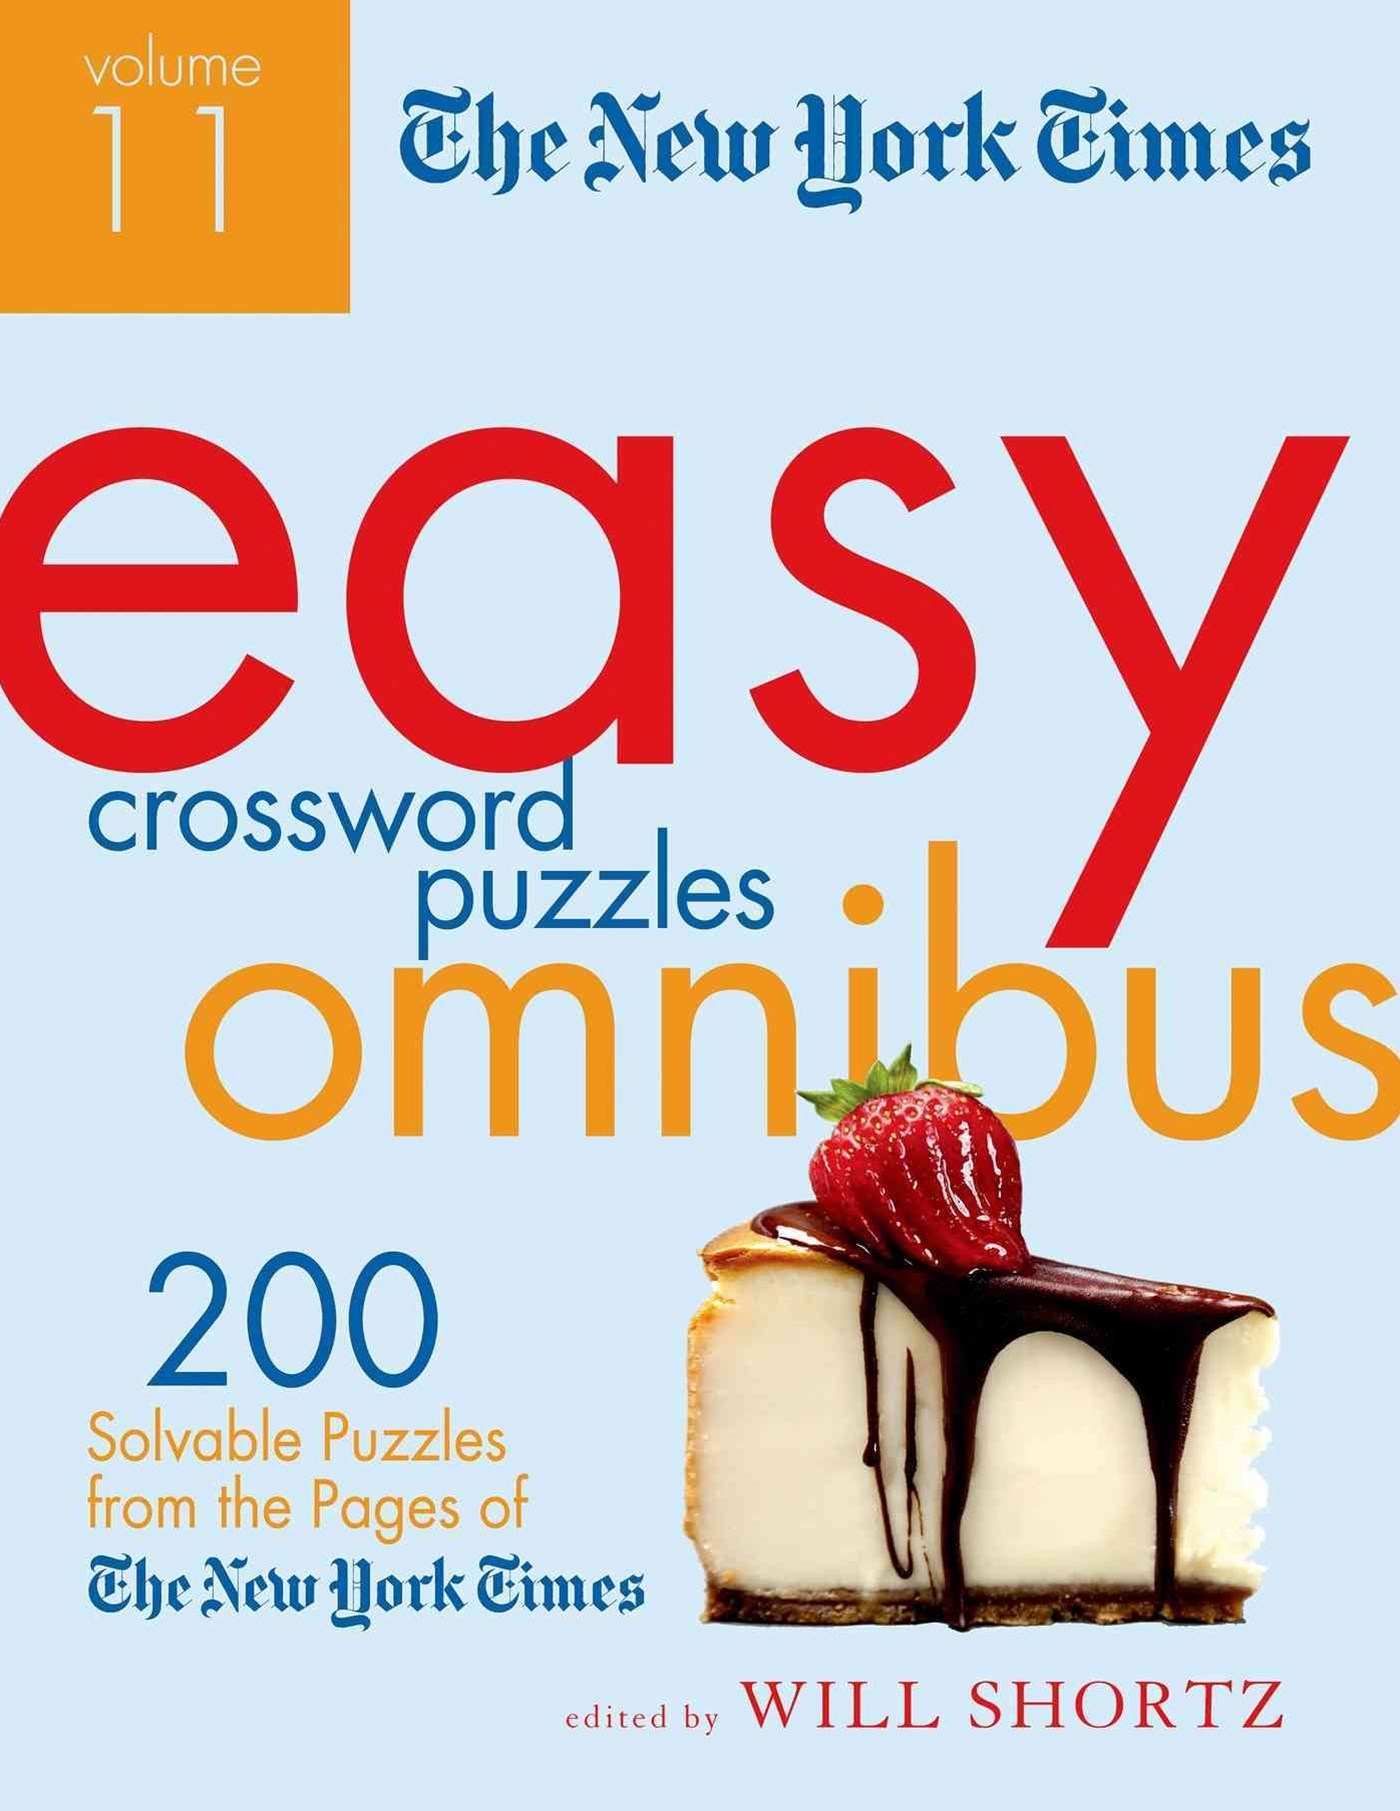 The New York Times Easy Crossword Puzzle Omnibus Volume 11